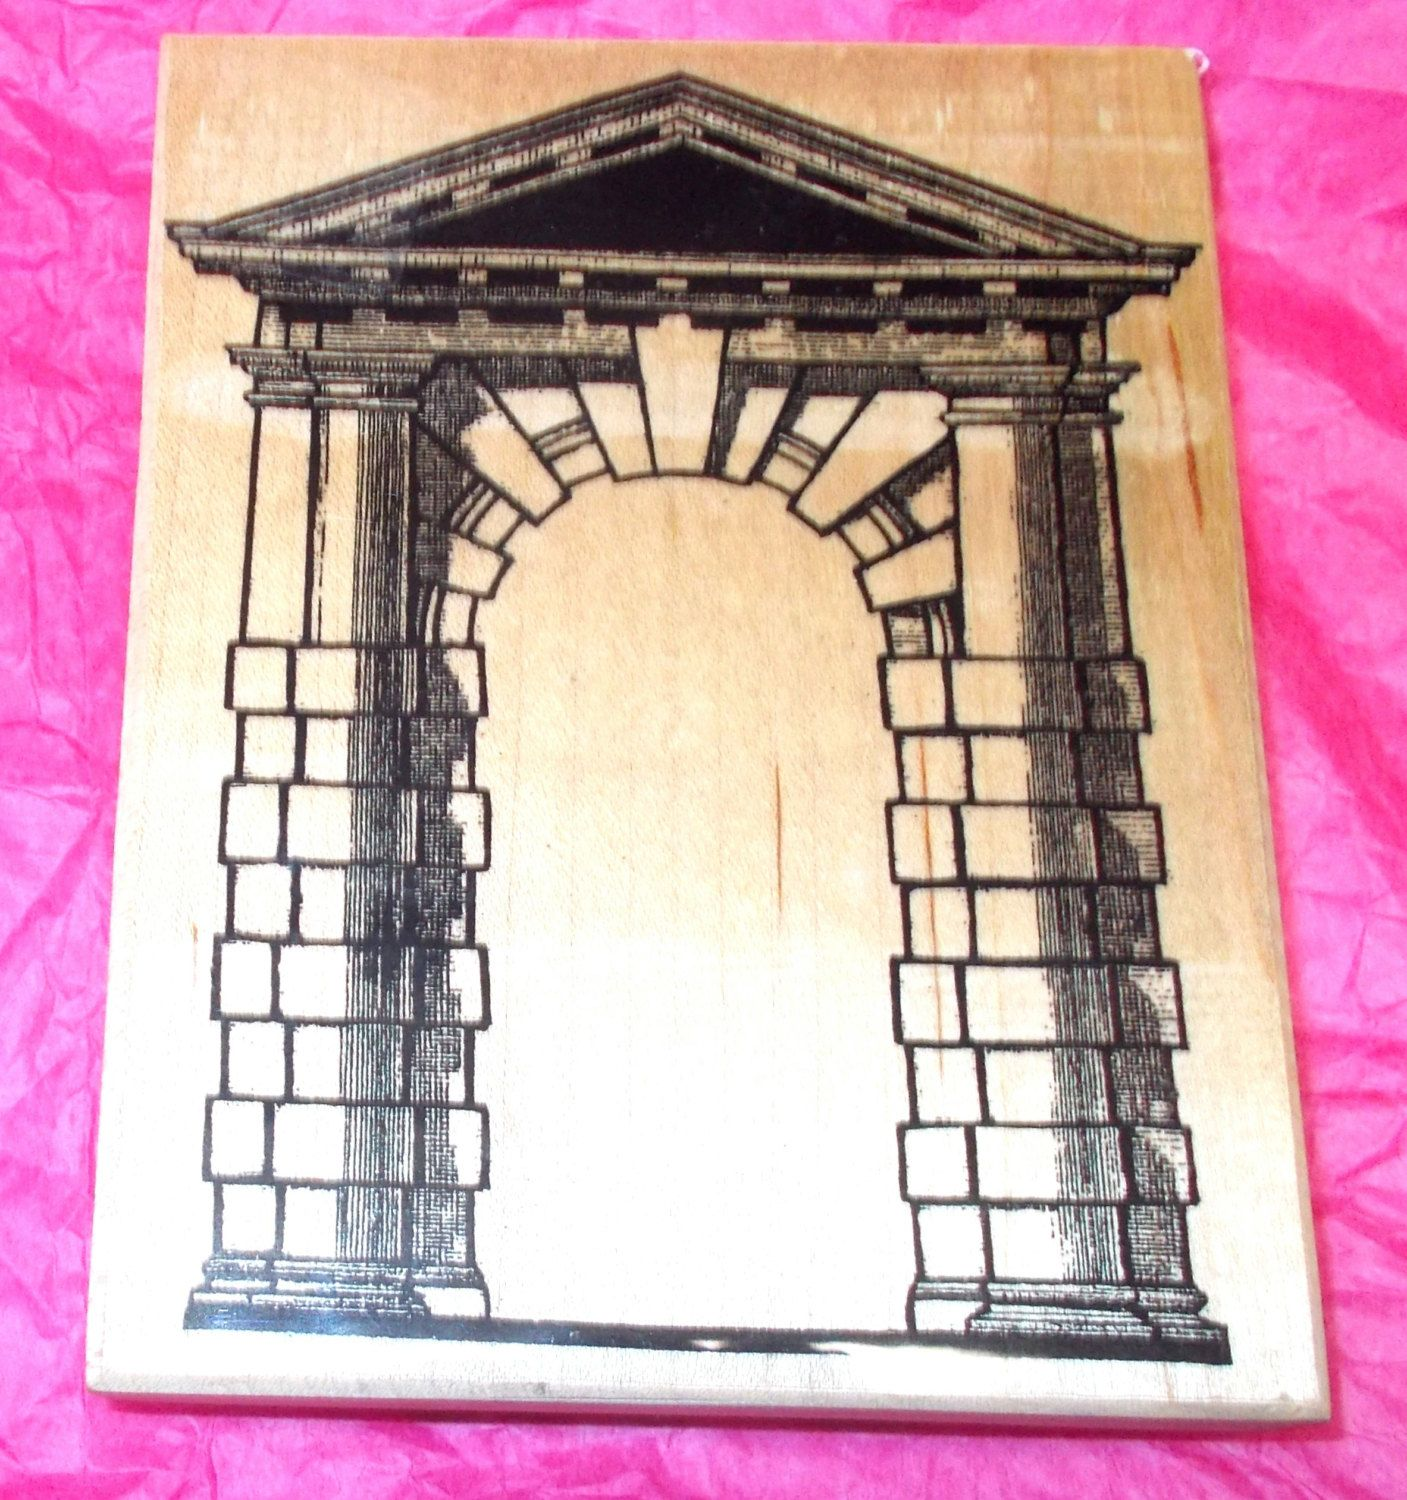 Postmodern design greco roman shrine rubber stamp paper crafts postmodern design greco roman shrine rubber stamp paper crafts frames wood mounted collage art stamps rubber stamping card making ar2 105 k jeuxipadfo Choice Image